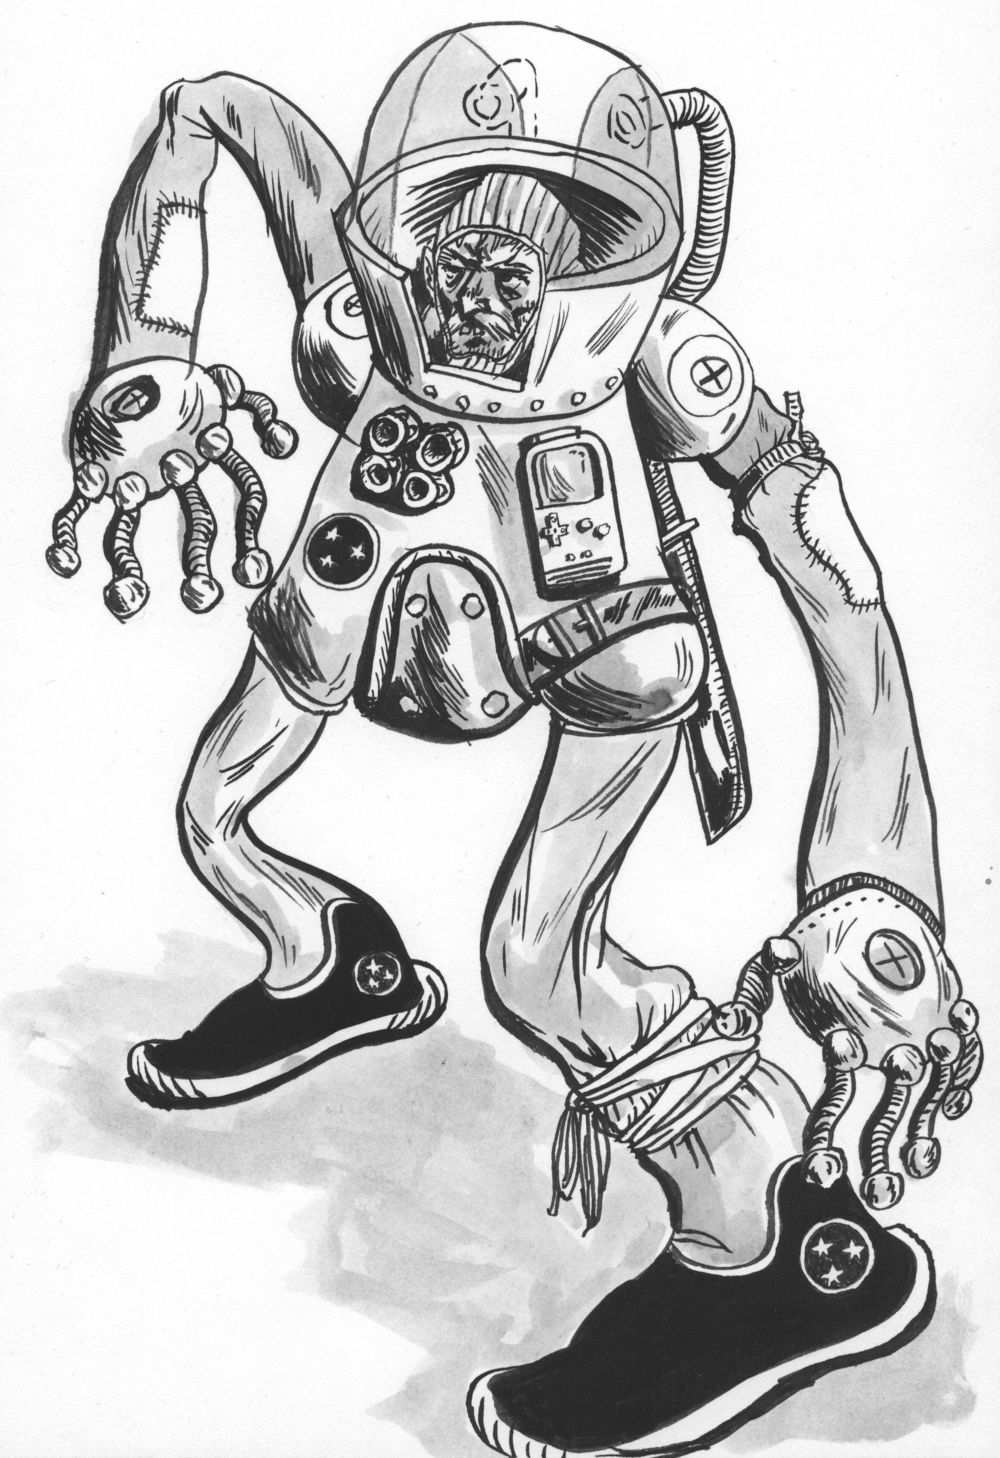 """Grizzly Suit Atoms"" - crackpot space inventor and survivalist."